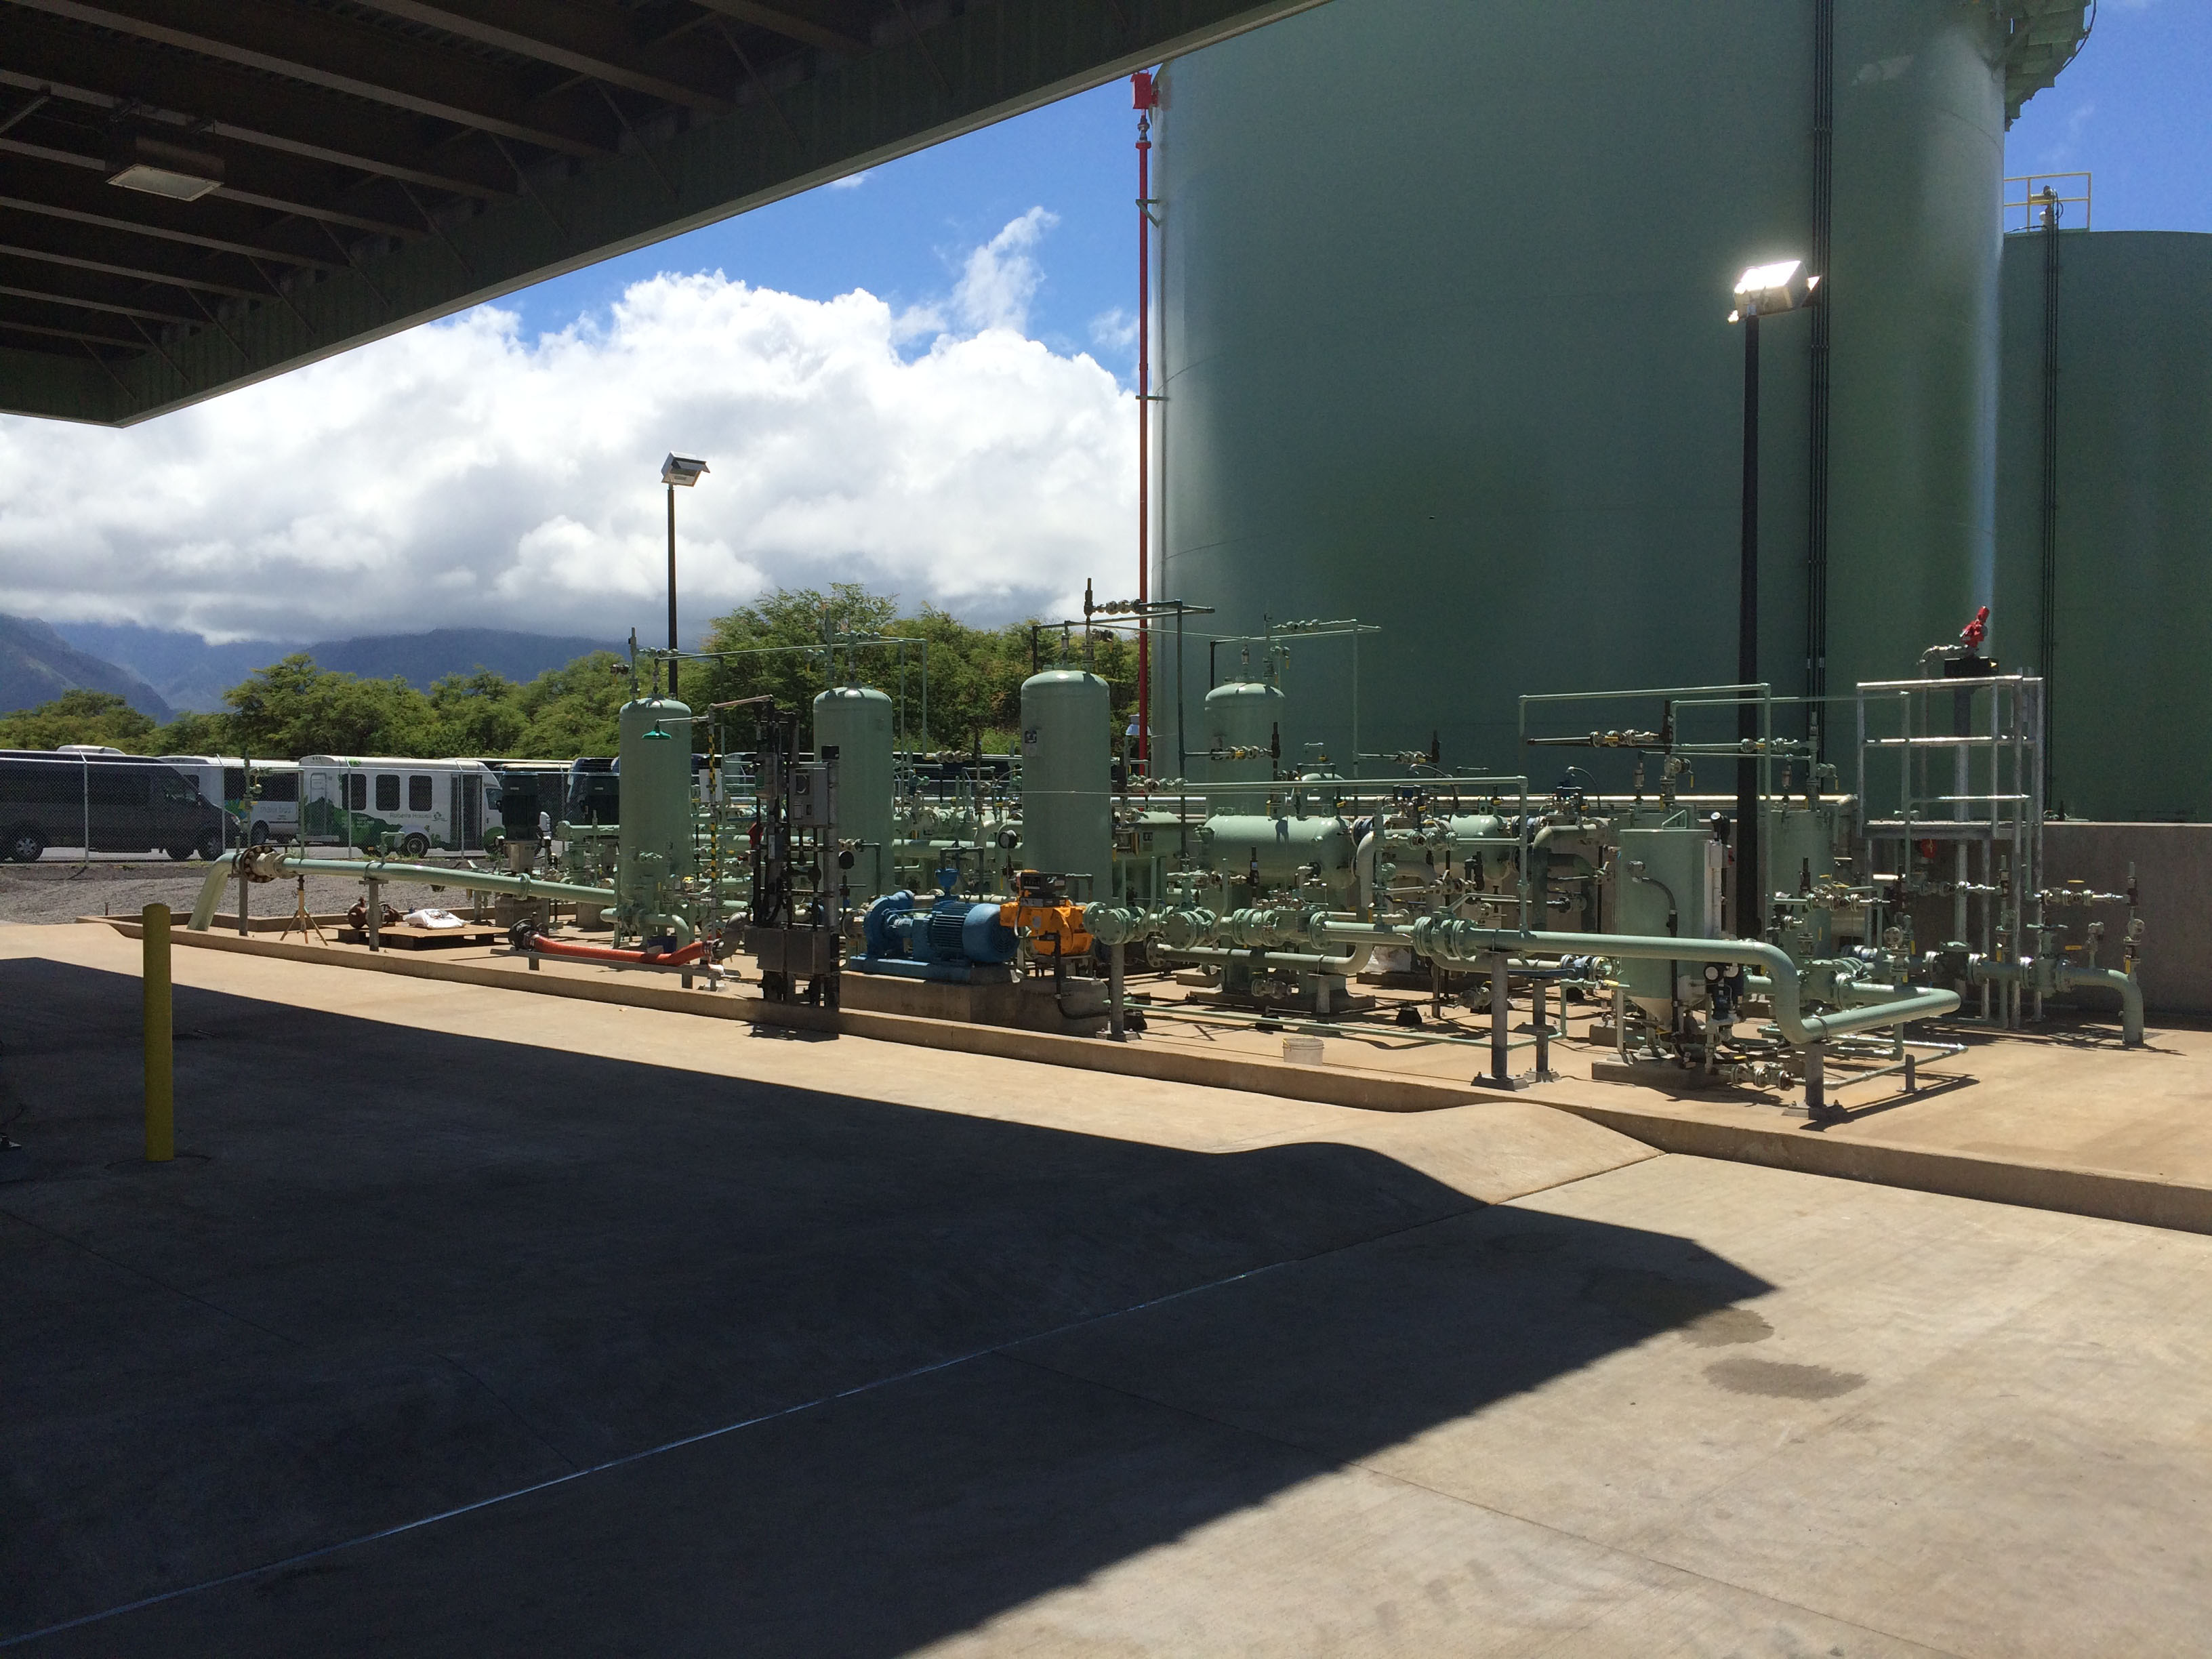 Hffc Jet A Storage Facility Maui International Airport Ogg Velcon Filters Fuel Aviation Technicians